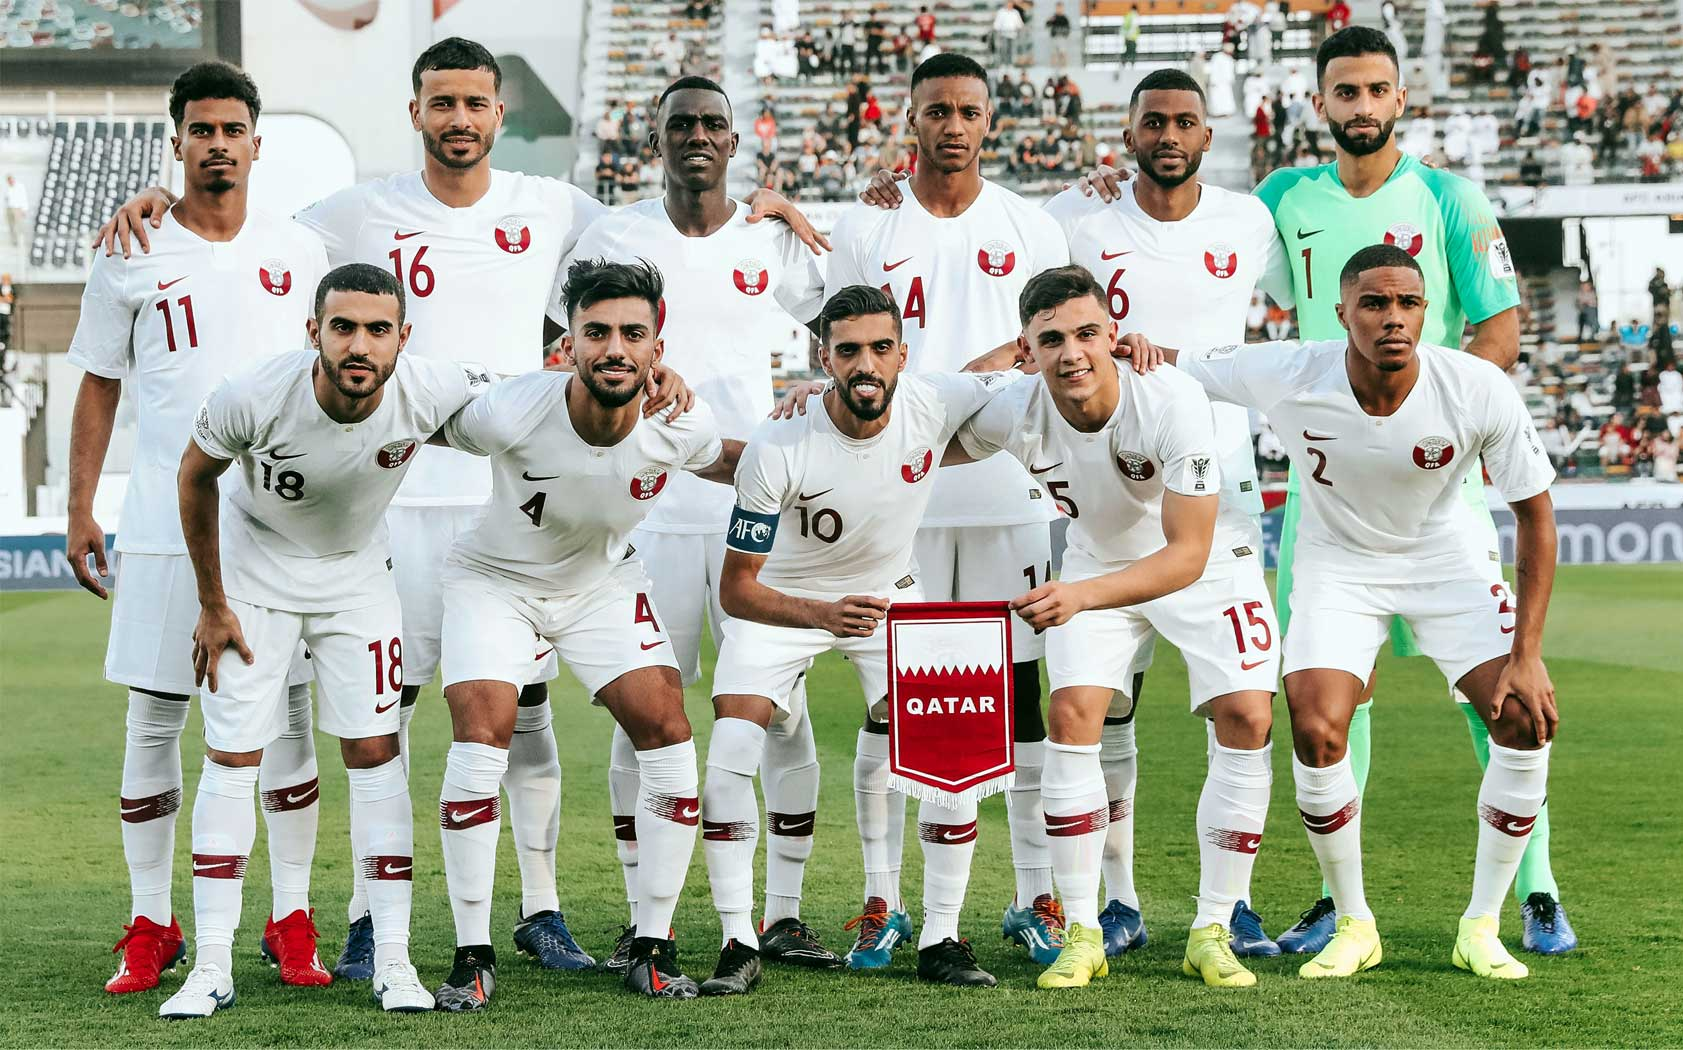 Qatar National Team 2019